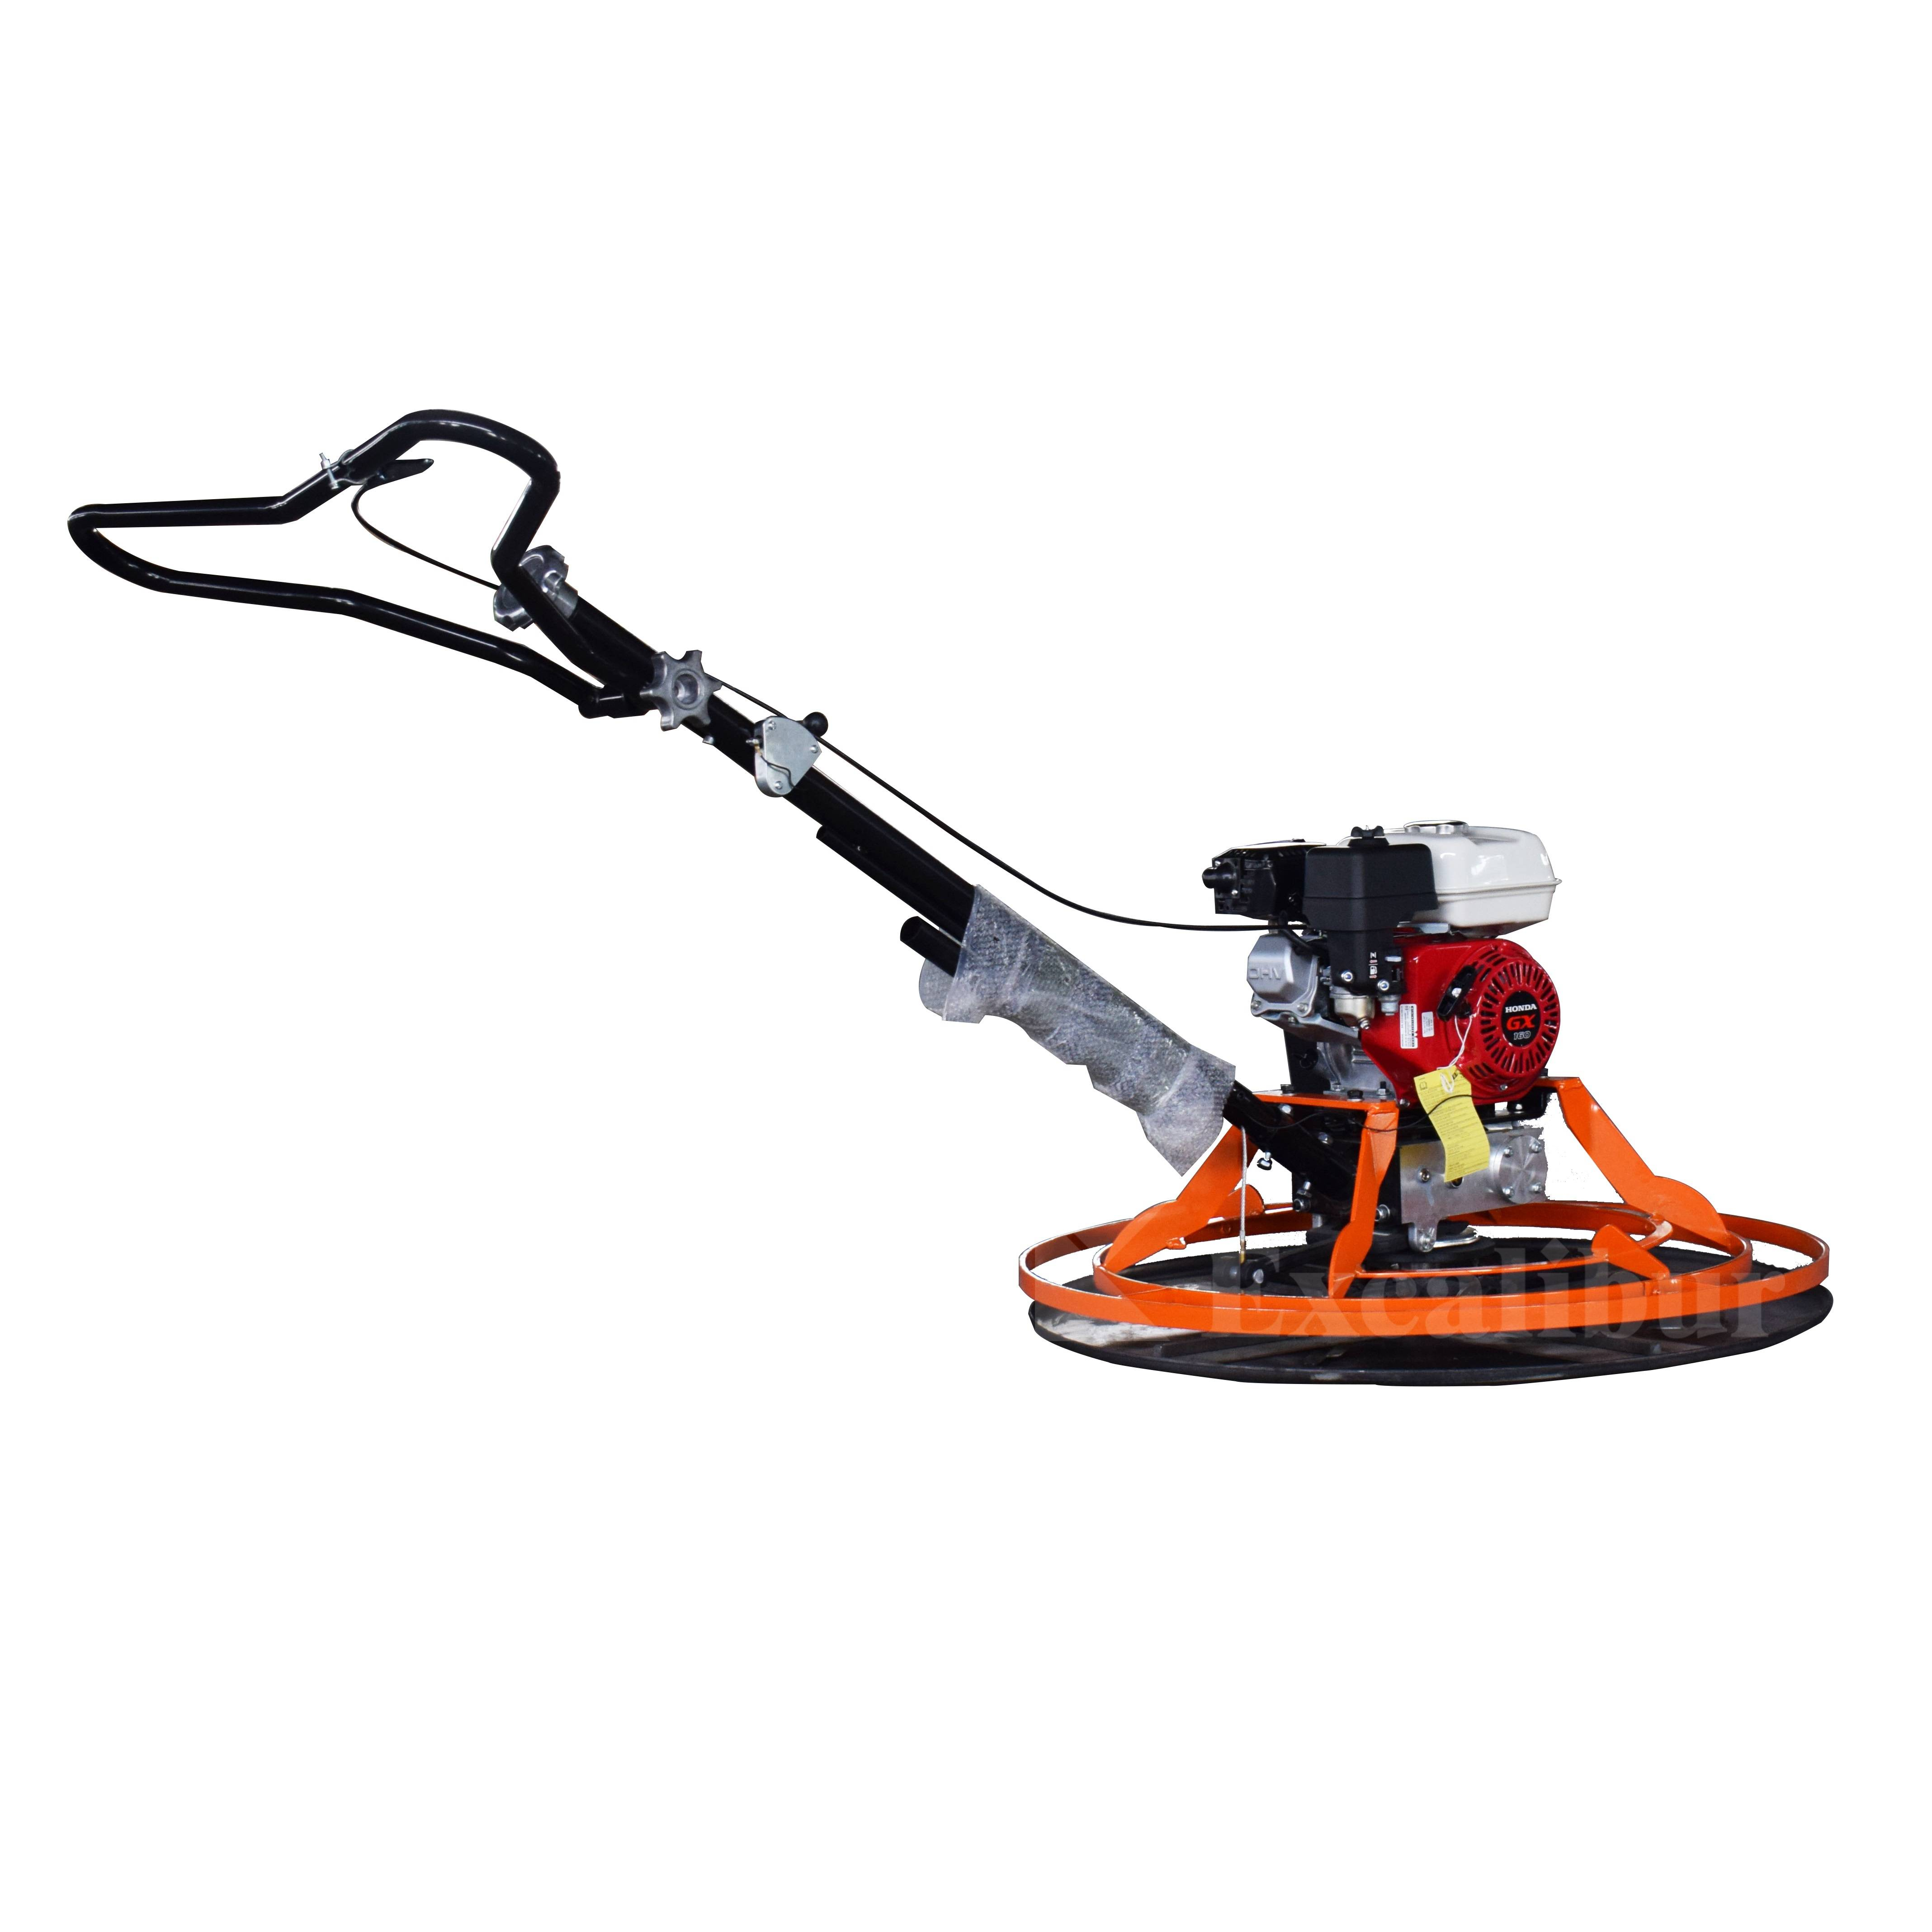 1meter Concrete Finishing Machiner Power Trowel With Honda Engine ST-100/ST-36A